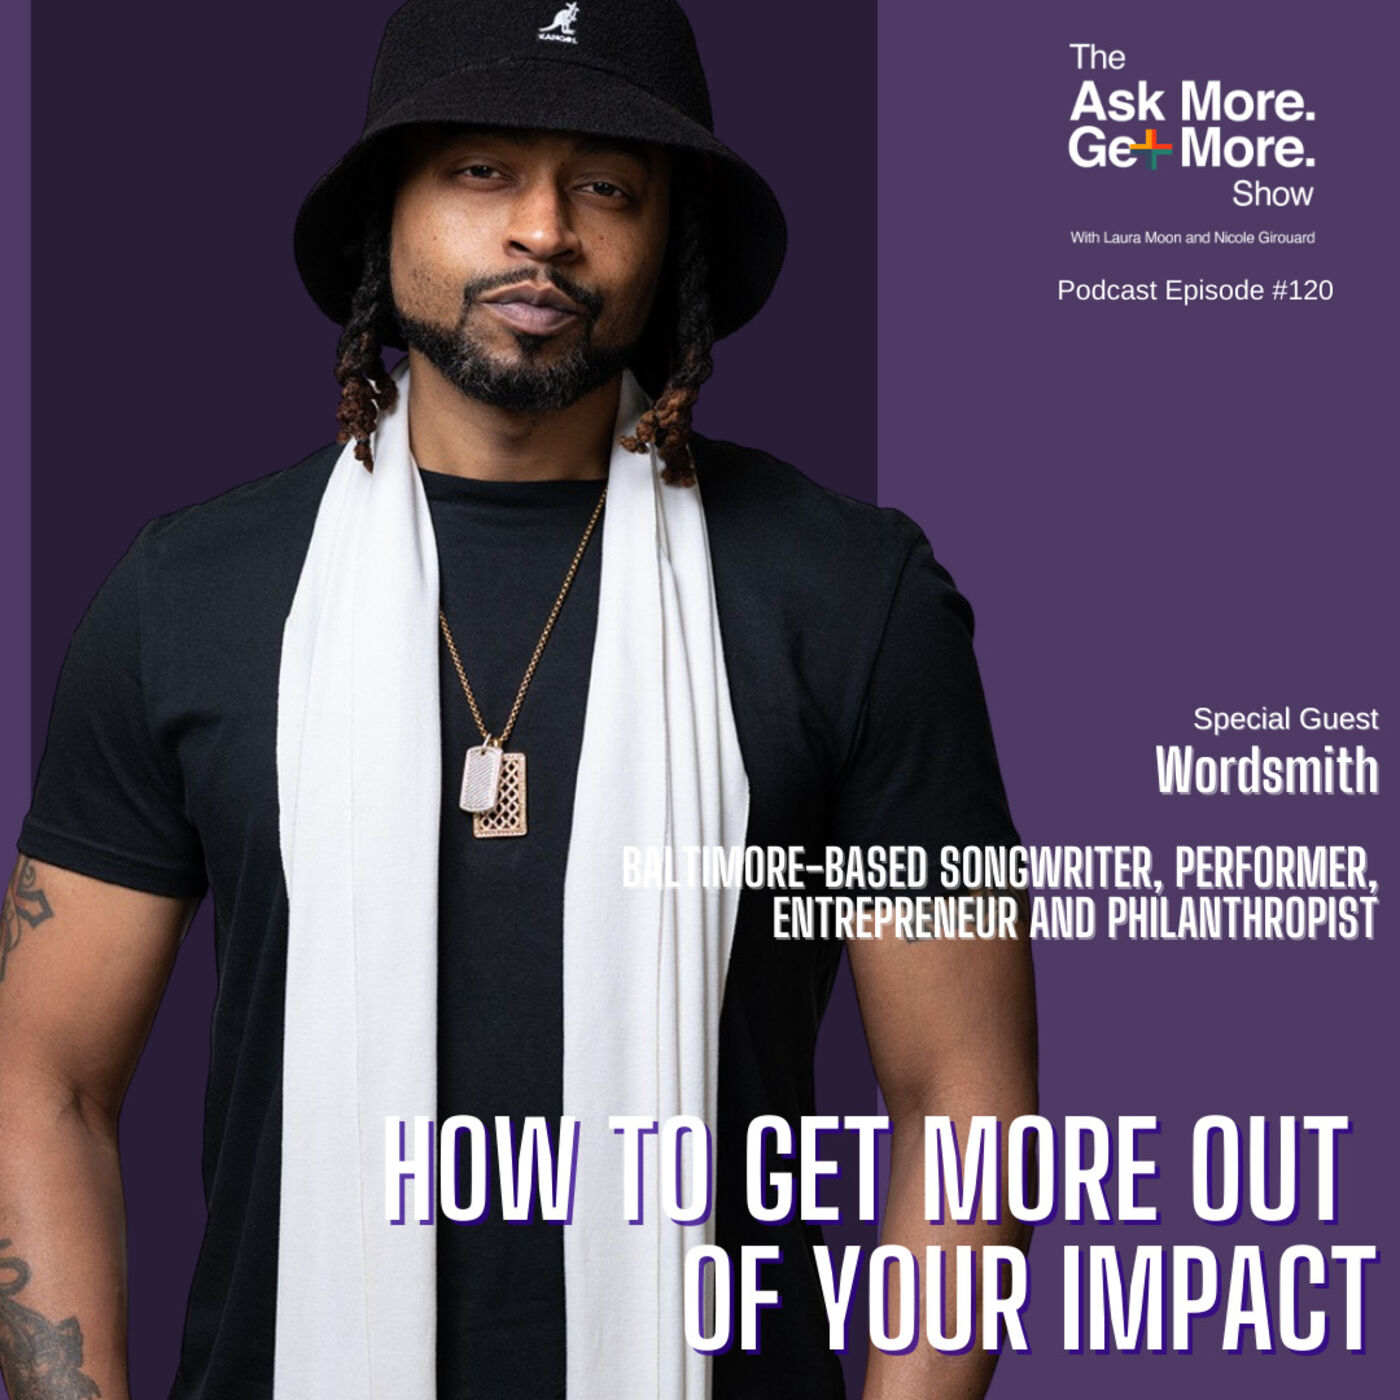 Giving Back Lifts You Up and Makes an Impact [Wordsmith]